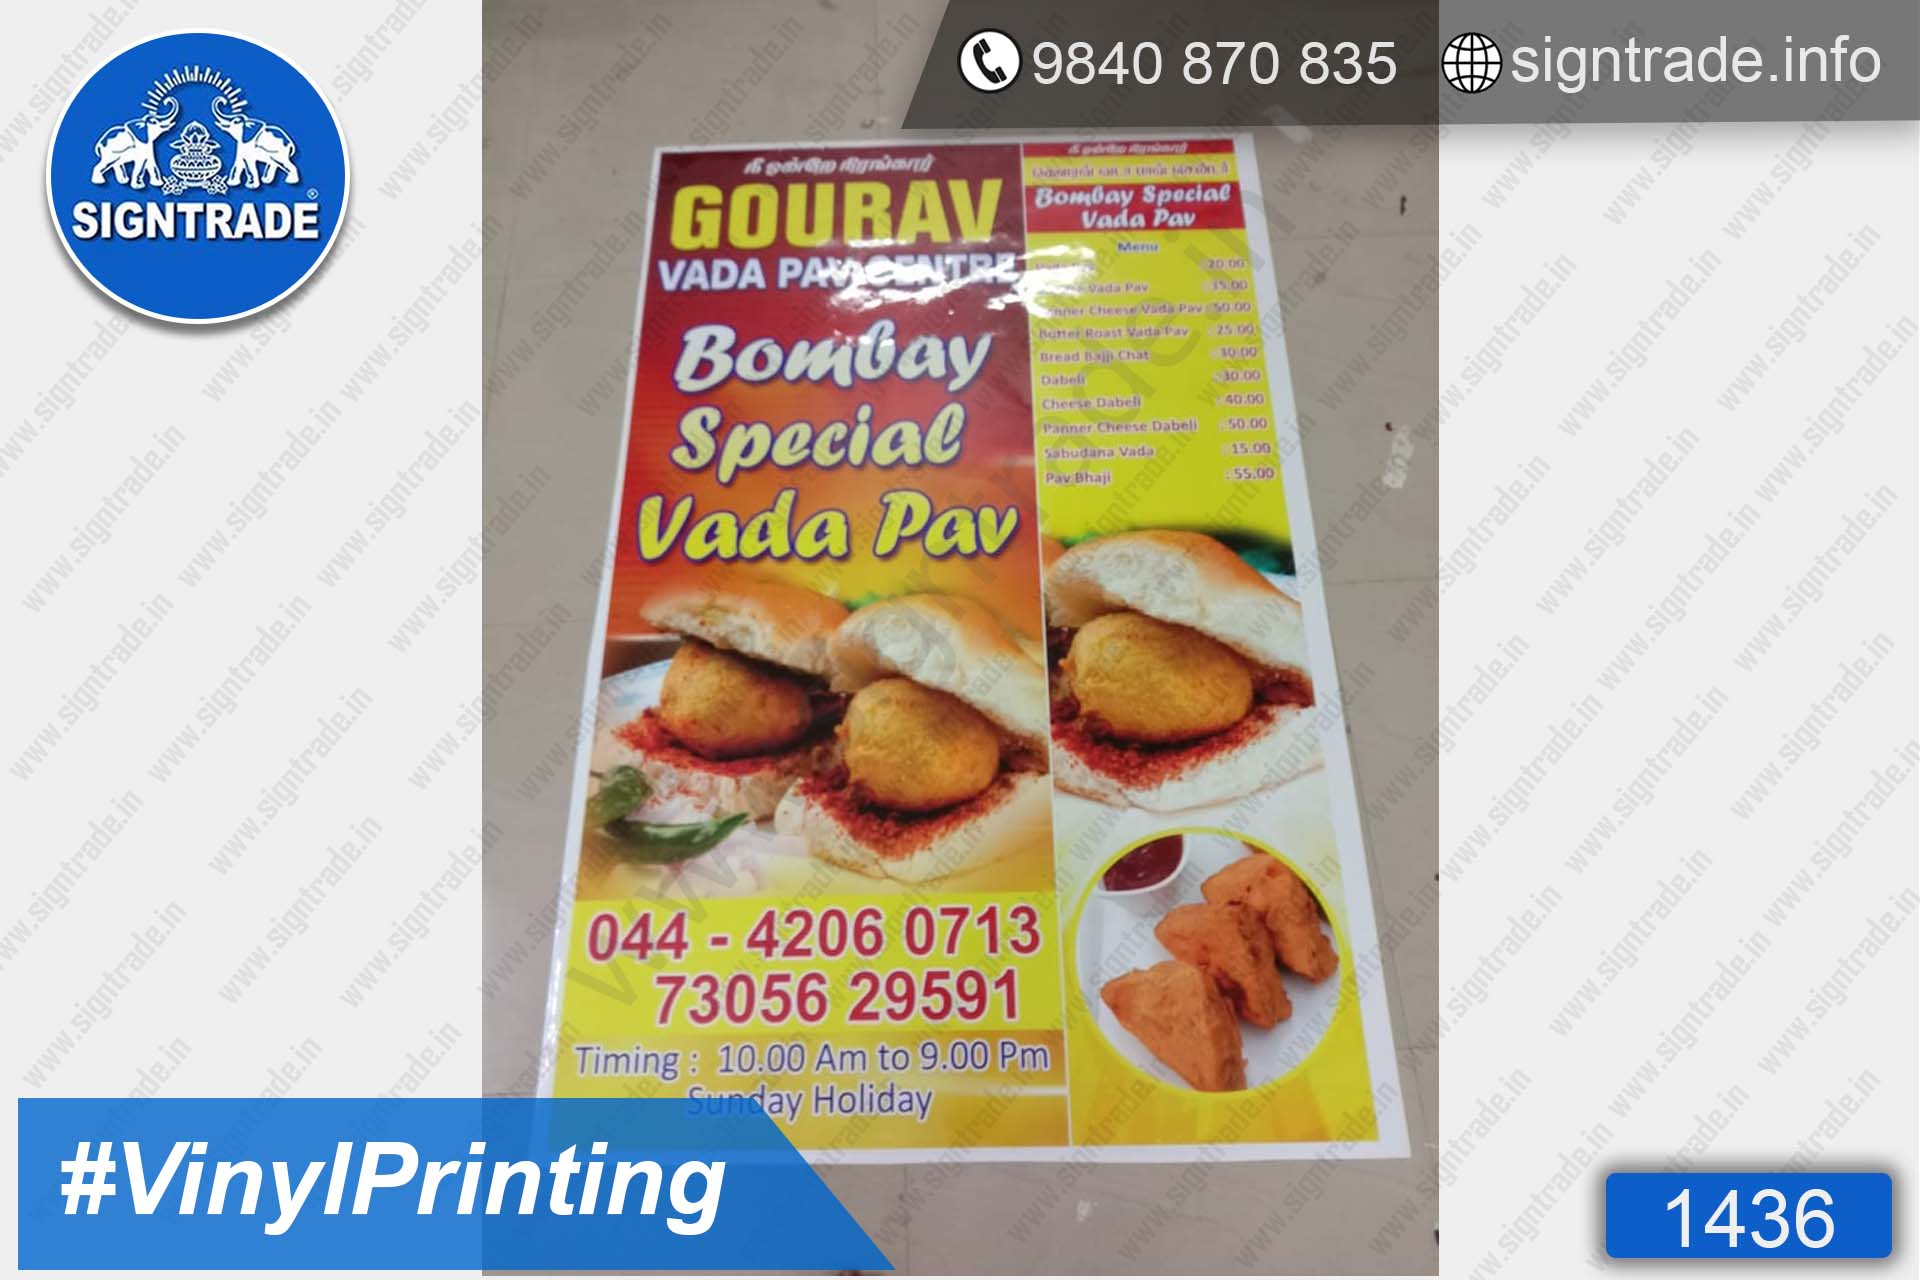 1436, Vinyl Graphics, Wall Graphics, Wall Wrapping, wall stickers, wall Wraps, Wall Branding, Wall Branding on foam board